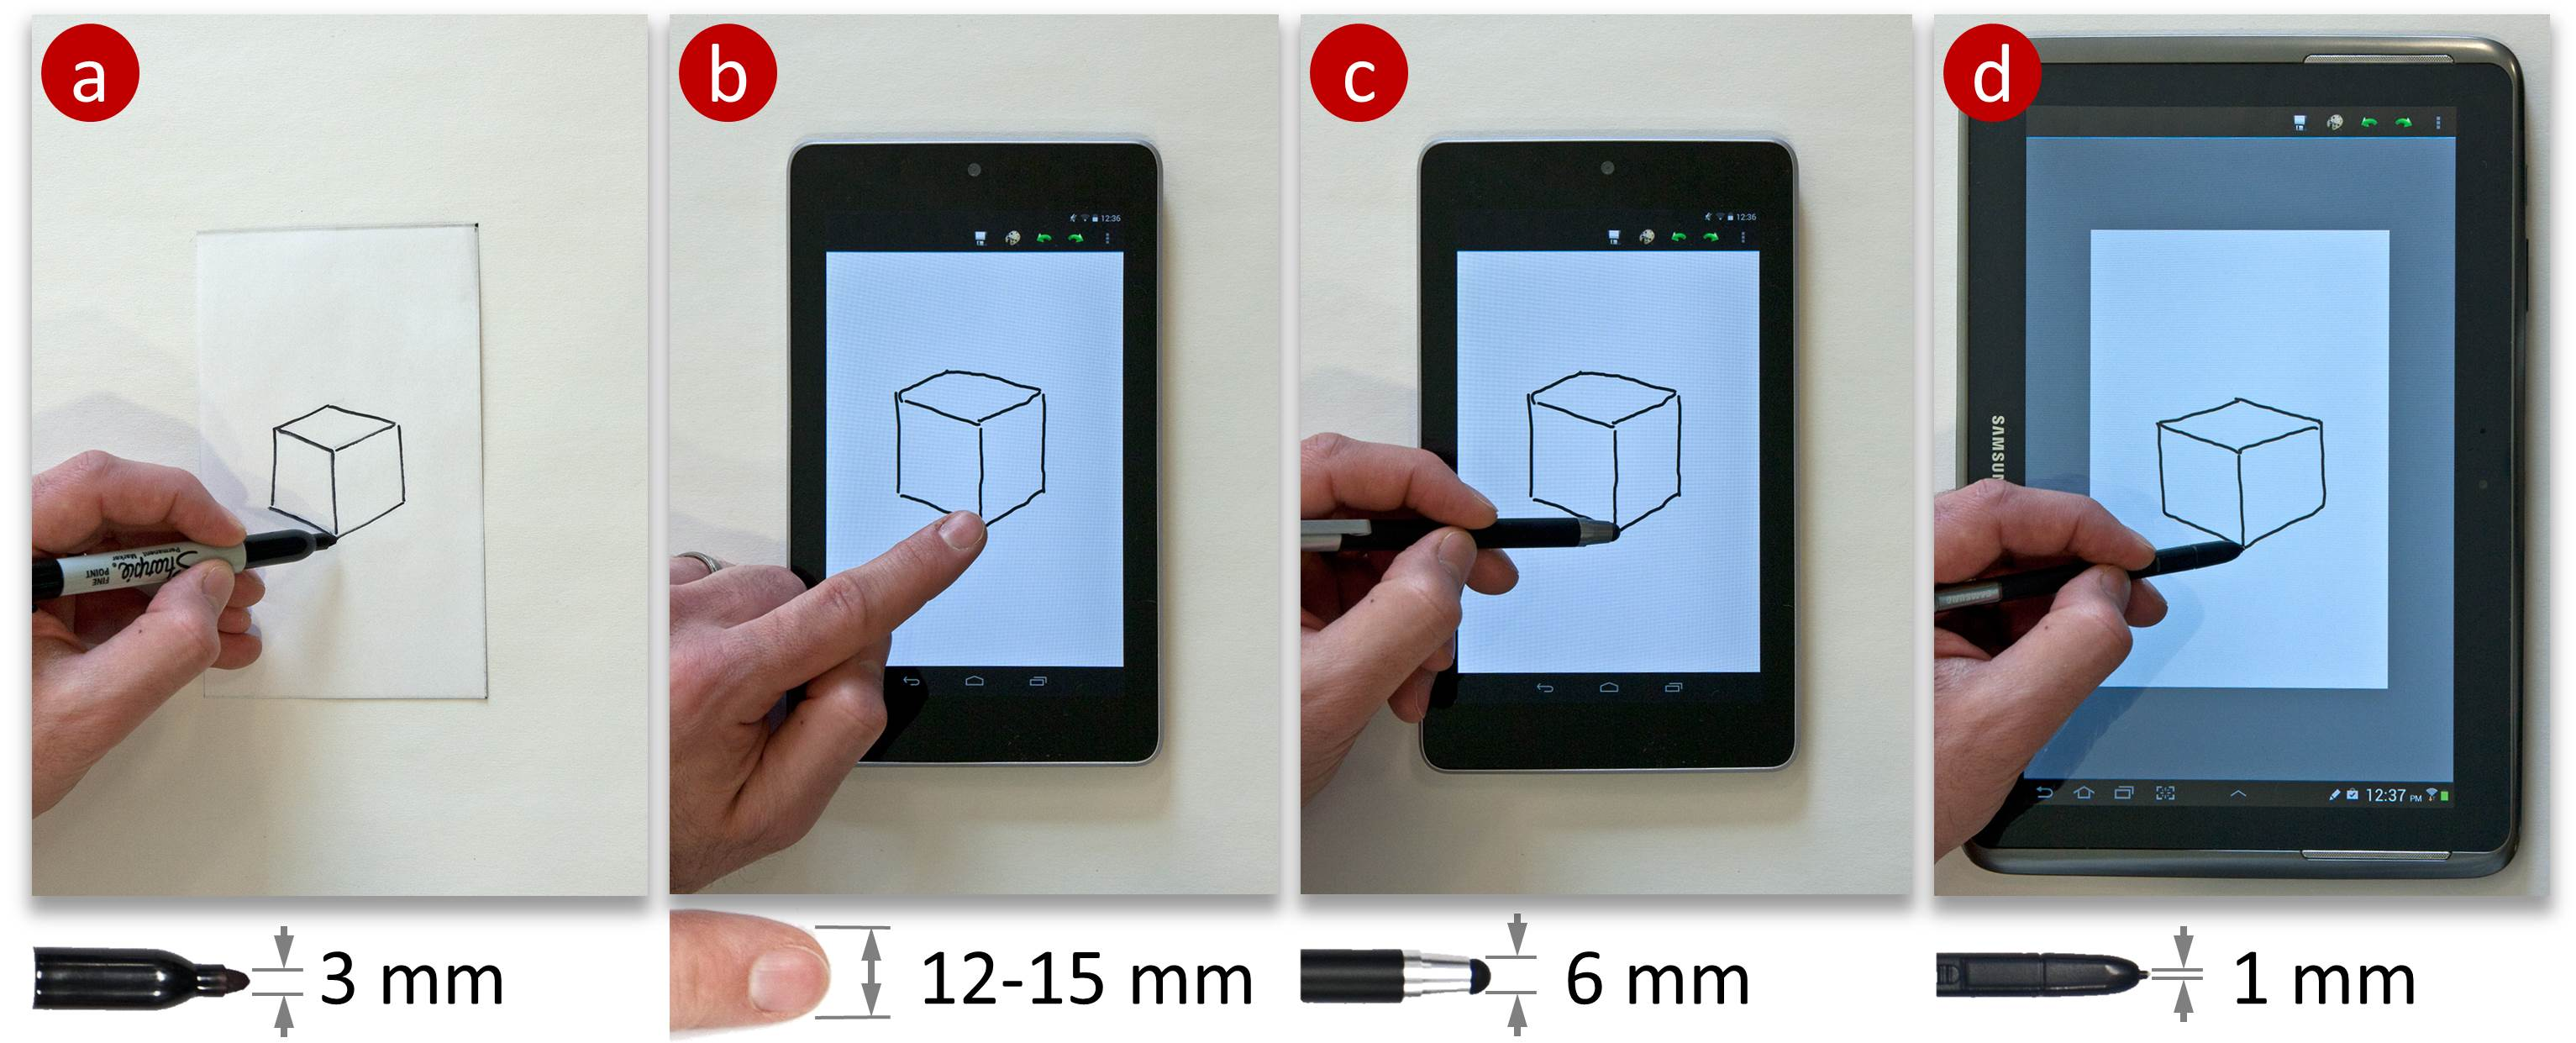 Tracing and Sketching Performance using Blunt-tipped Styli on Direct-Touch Tablets